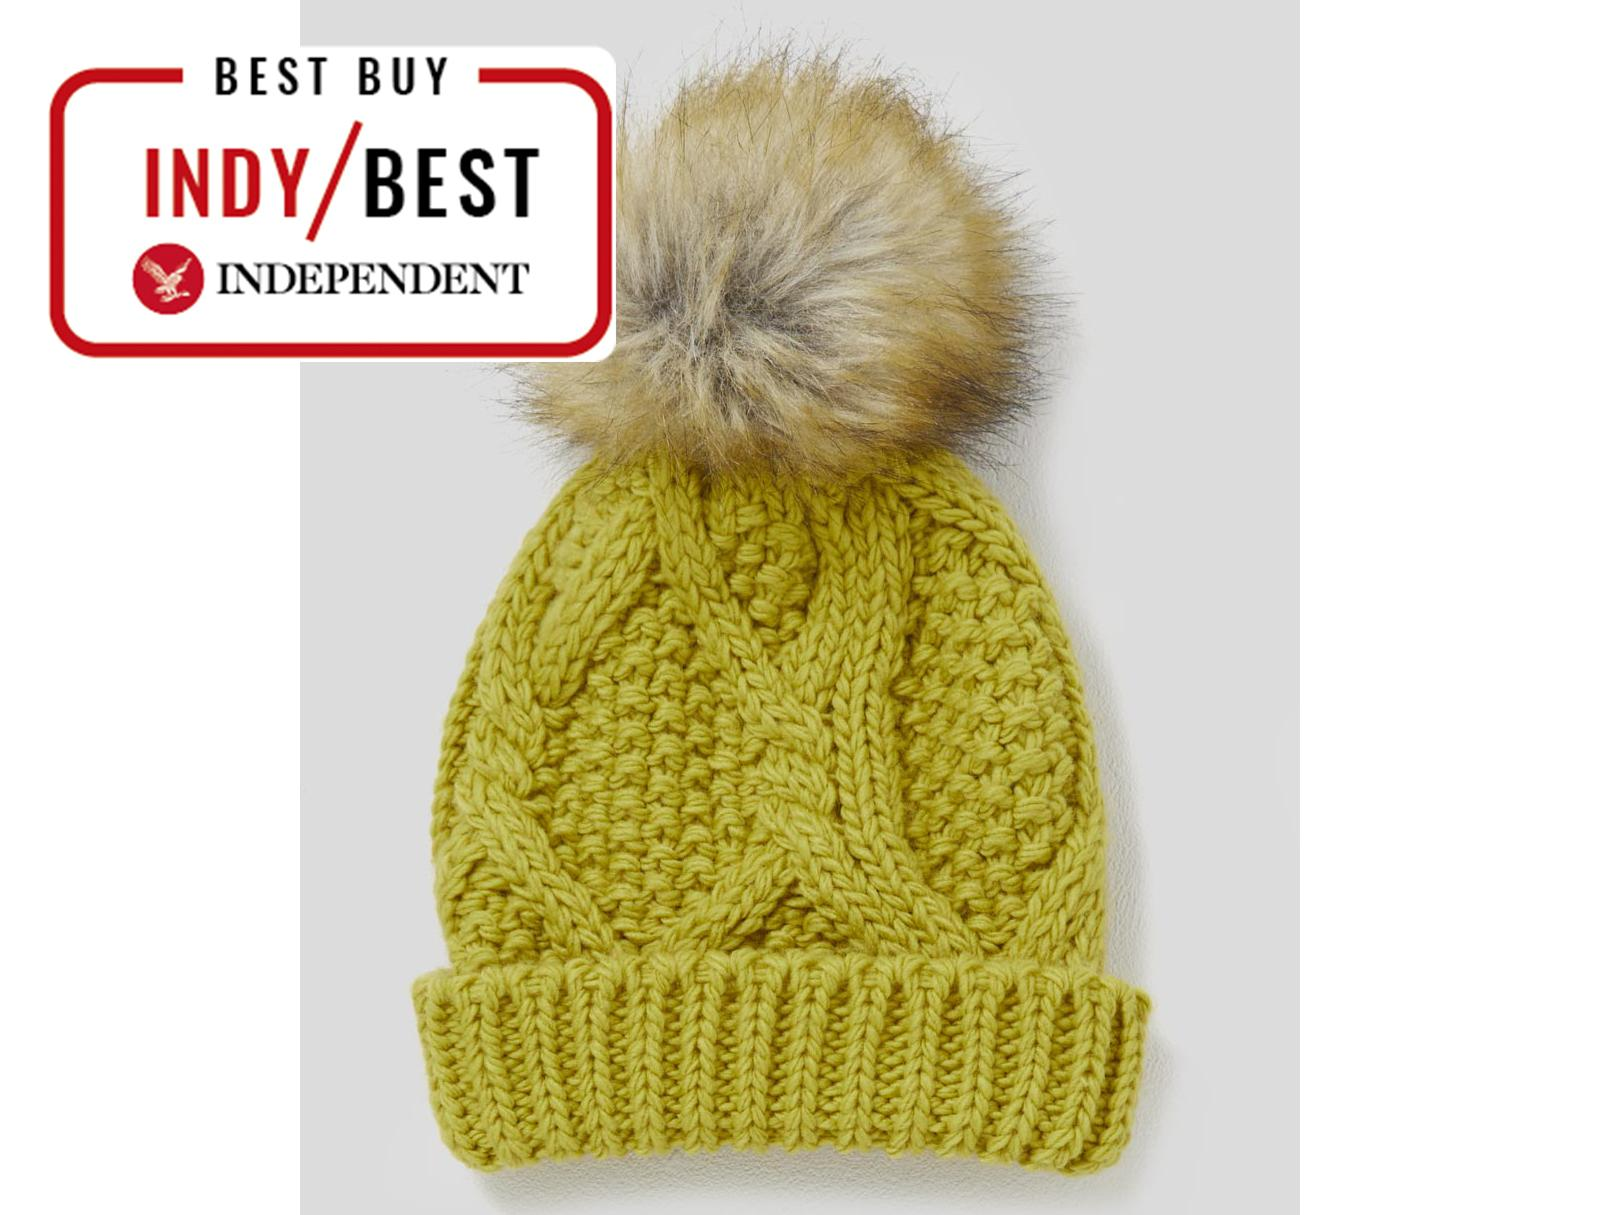 13 best winter hats for women | The Independent